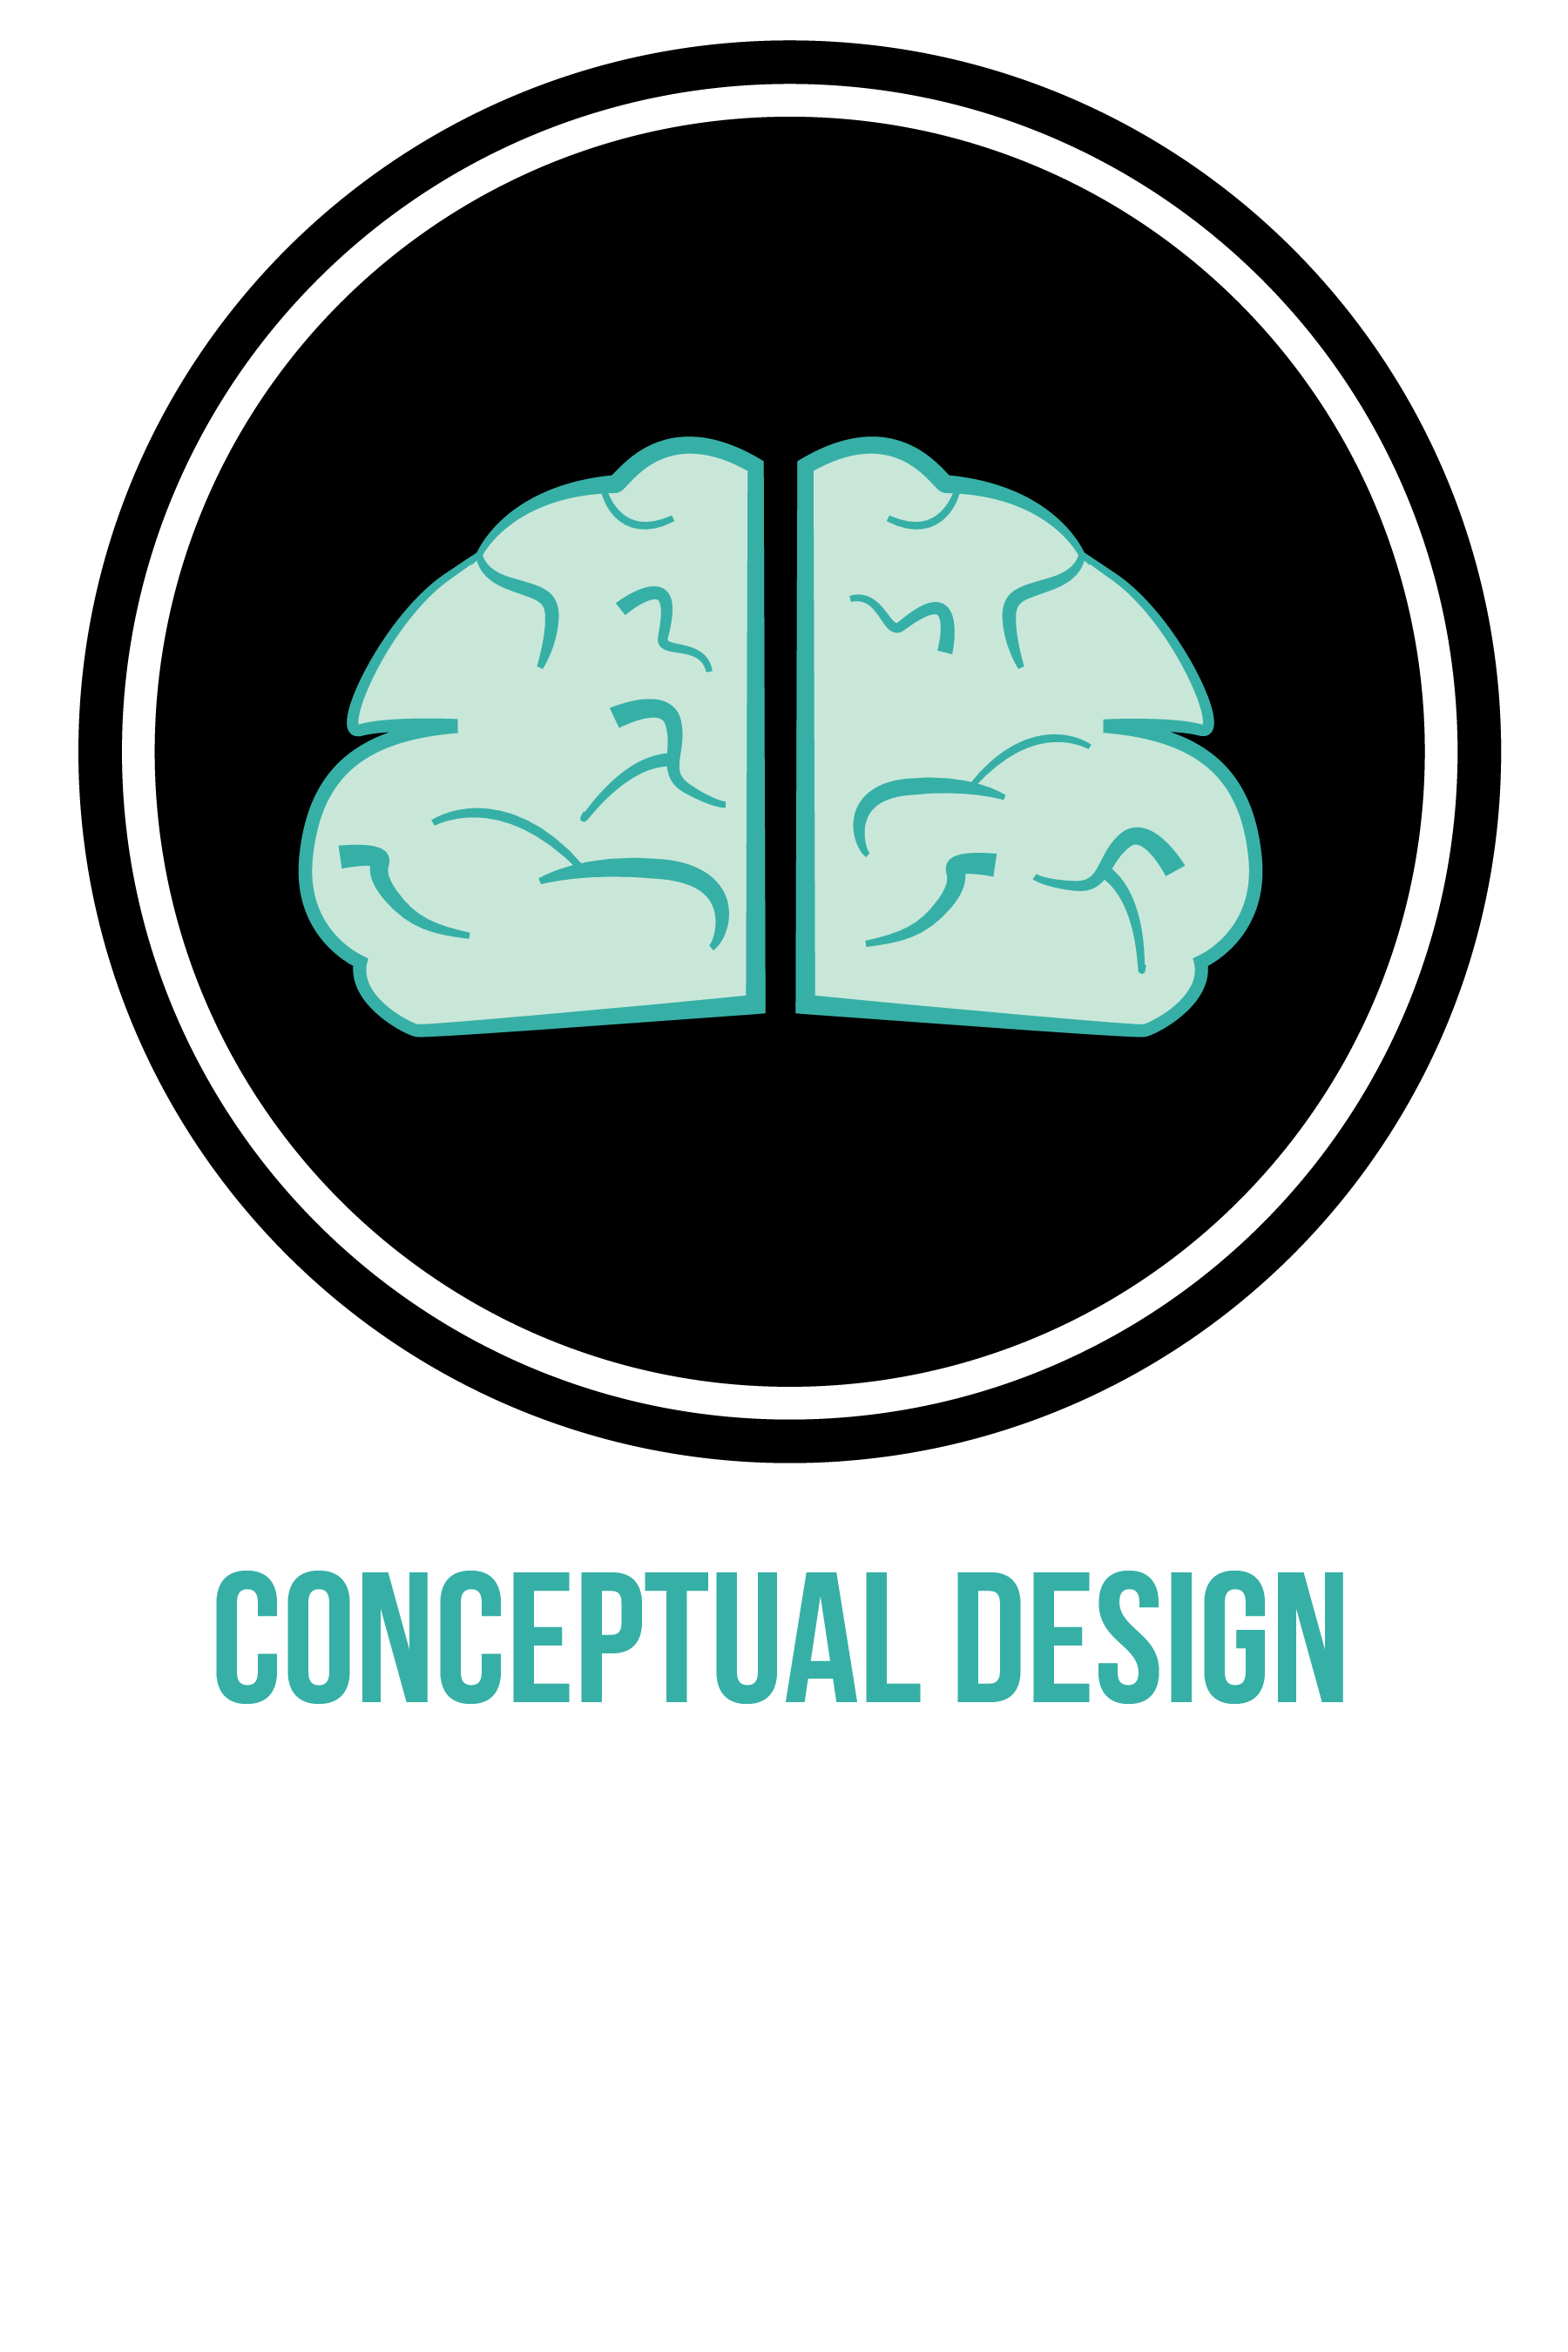 Need a design with some meaning and thought behind it?  Conceptual design, especially that based around environmental issues, is my specialty.  With a unique style, combining my love for imperfect drawings and digital art, I can create images with meaning behind them.